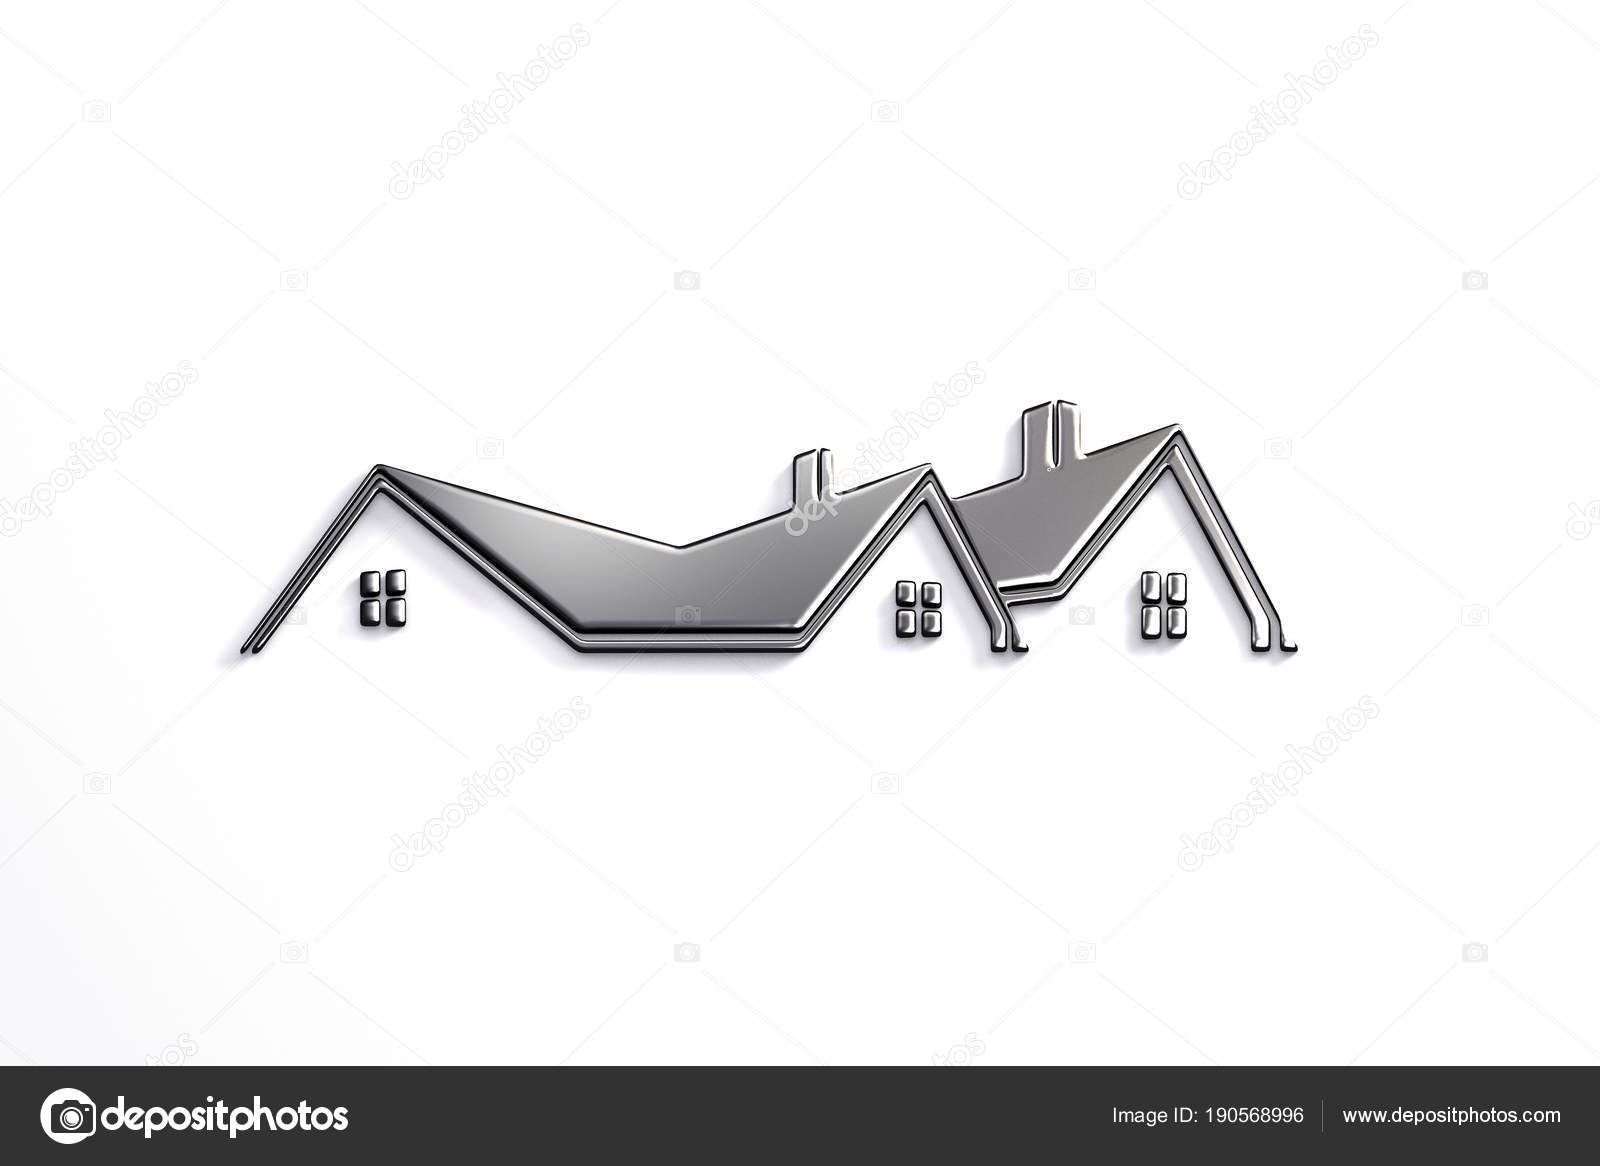 Apartments com logo clipart clipart free library Real Estate Silver Logo Design. 3D Rendering Illustration #estate ... clipart free library